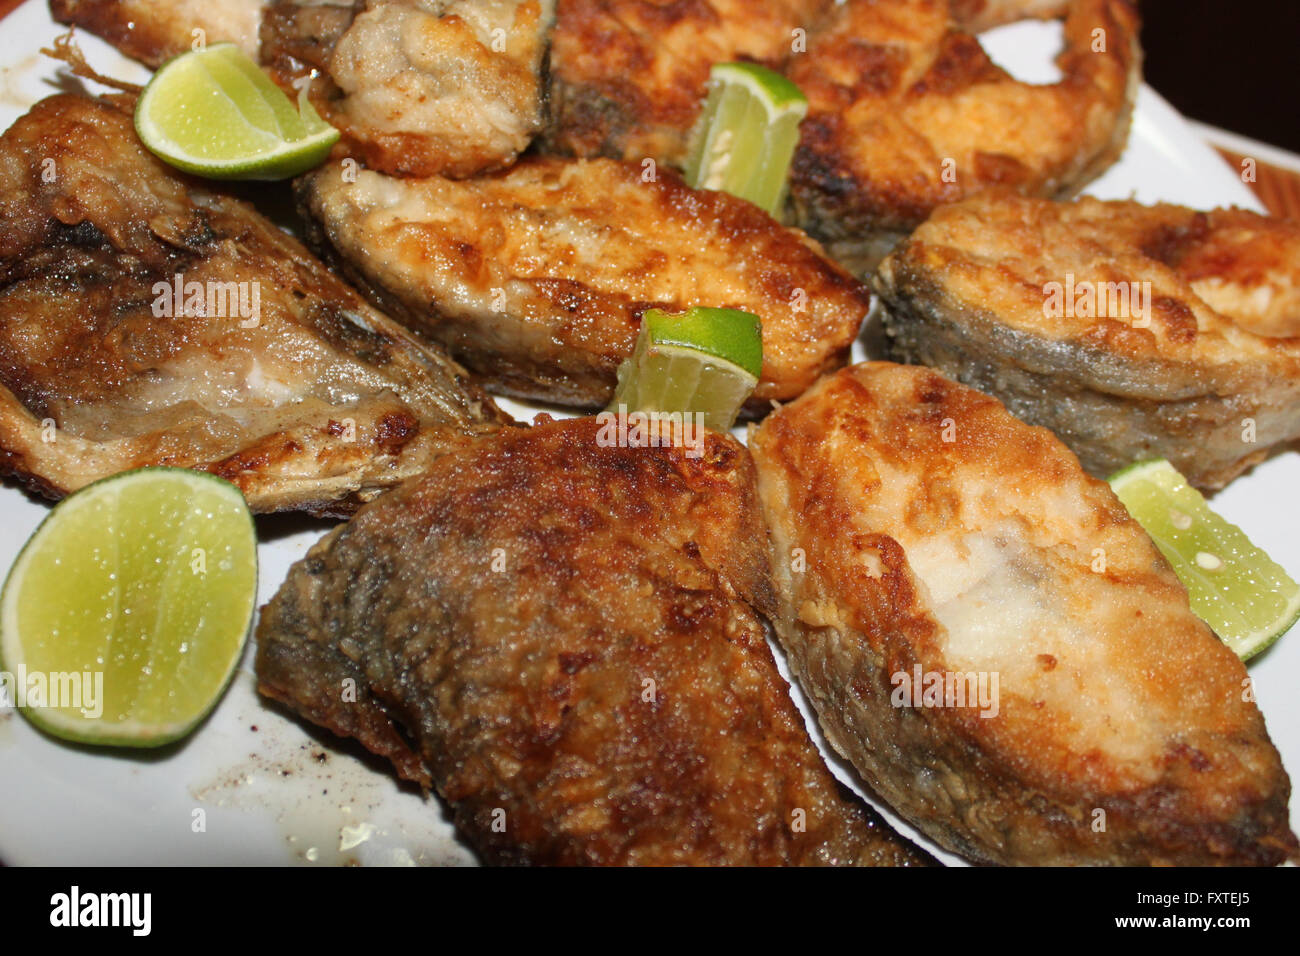 Ordinary fried fish in flour with slices of lime - Stock Image